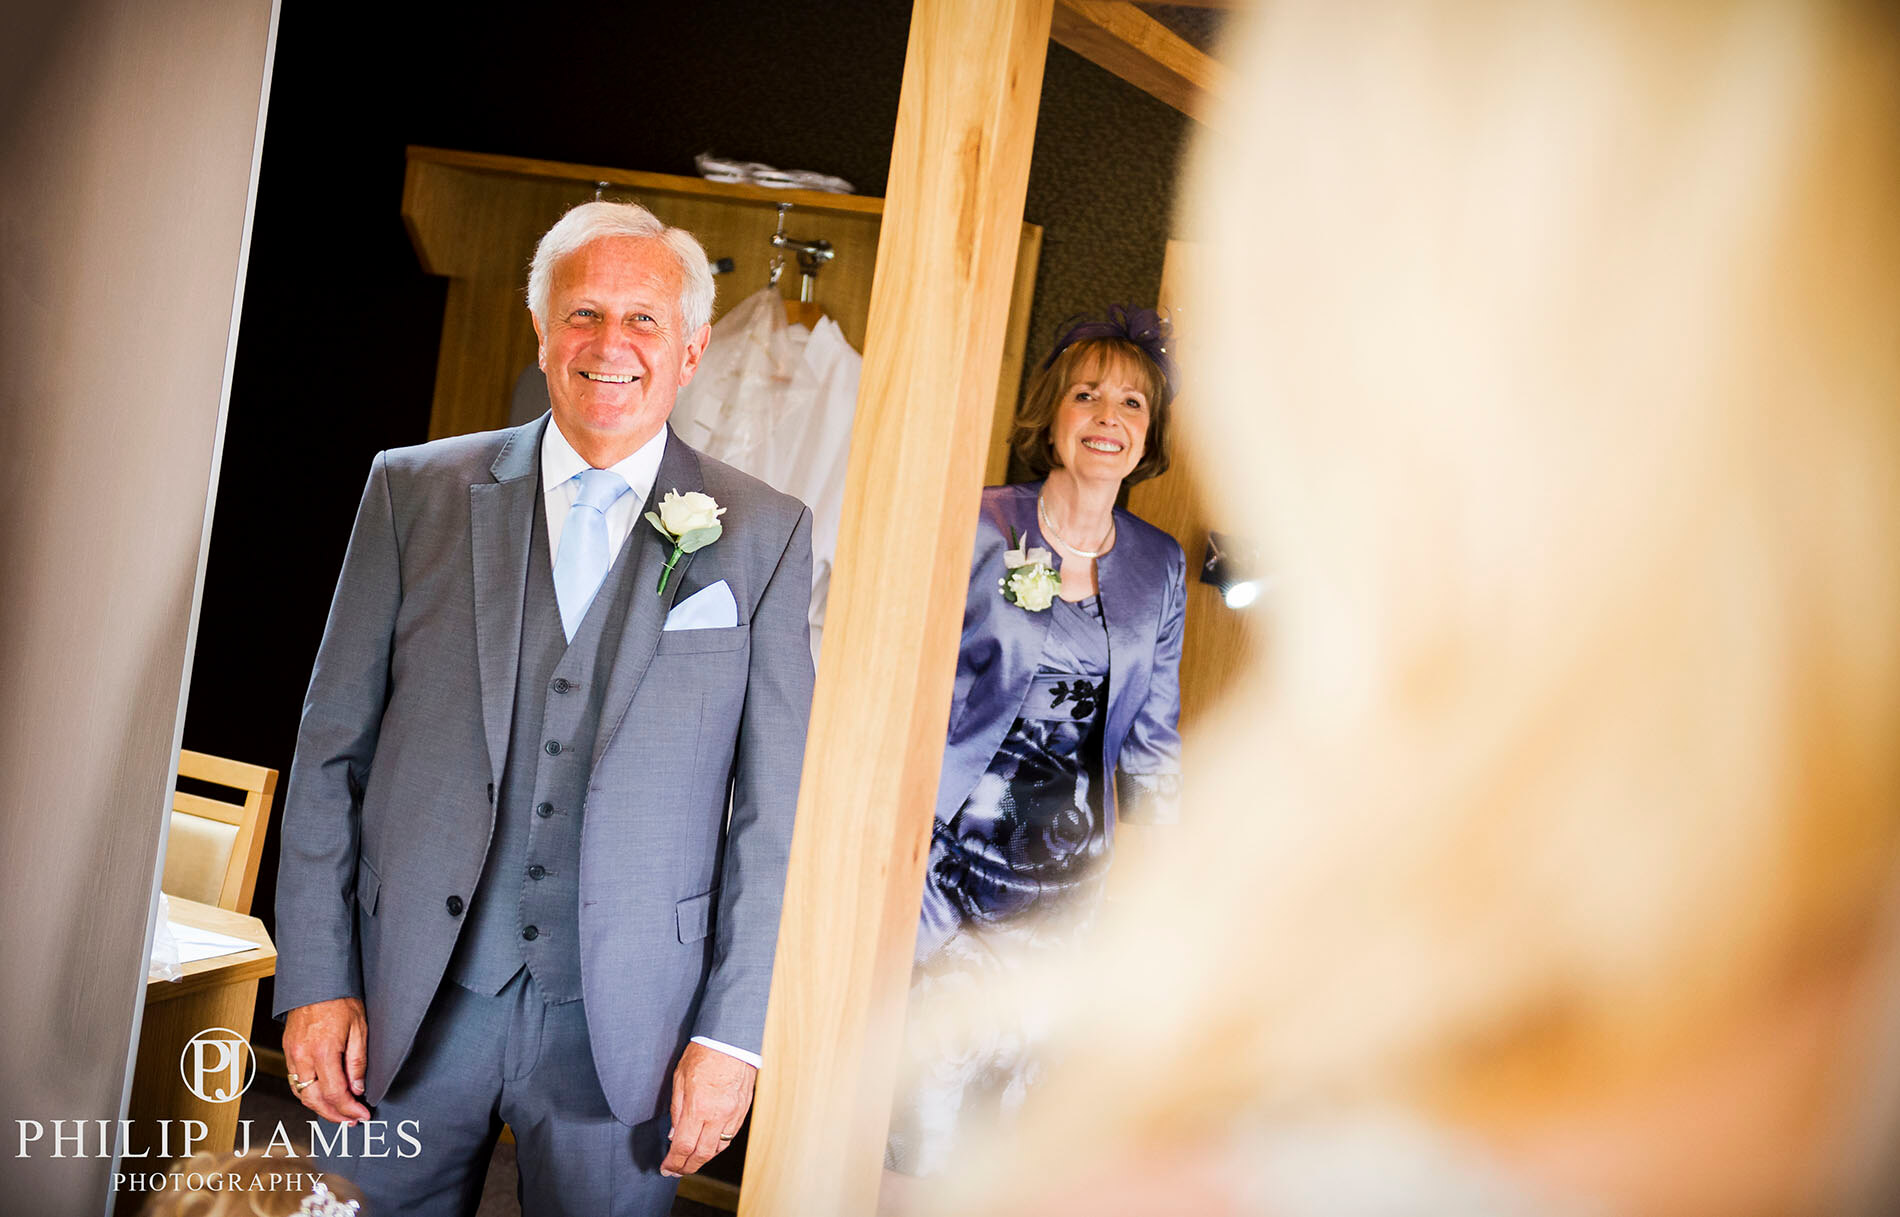 Philip James specializing in Wedding Photography Birmingham - Moments (66 of 170)